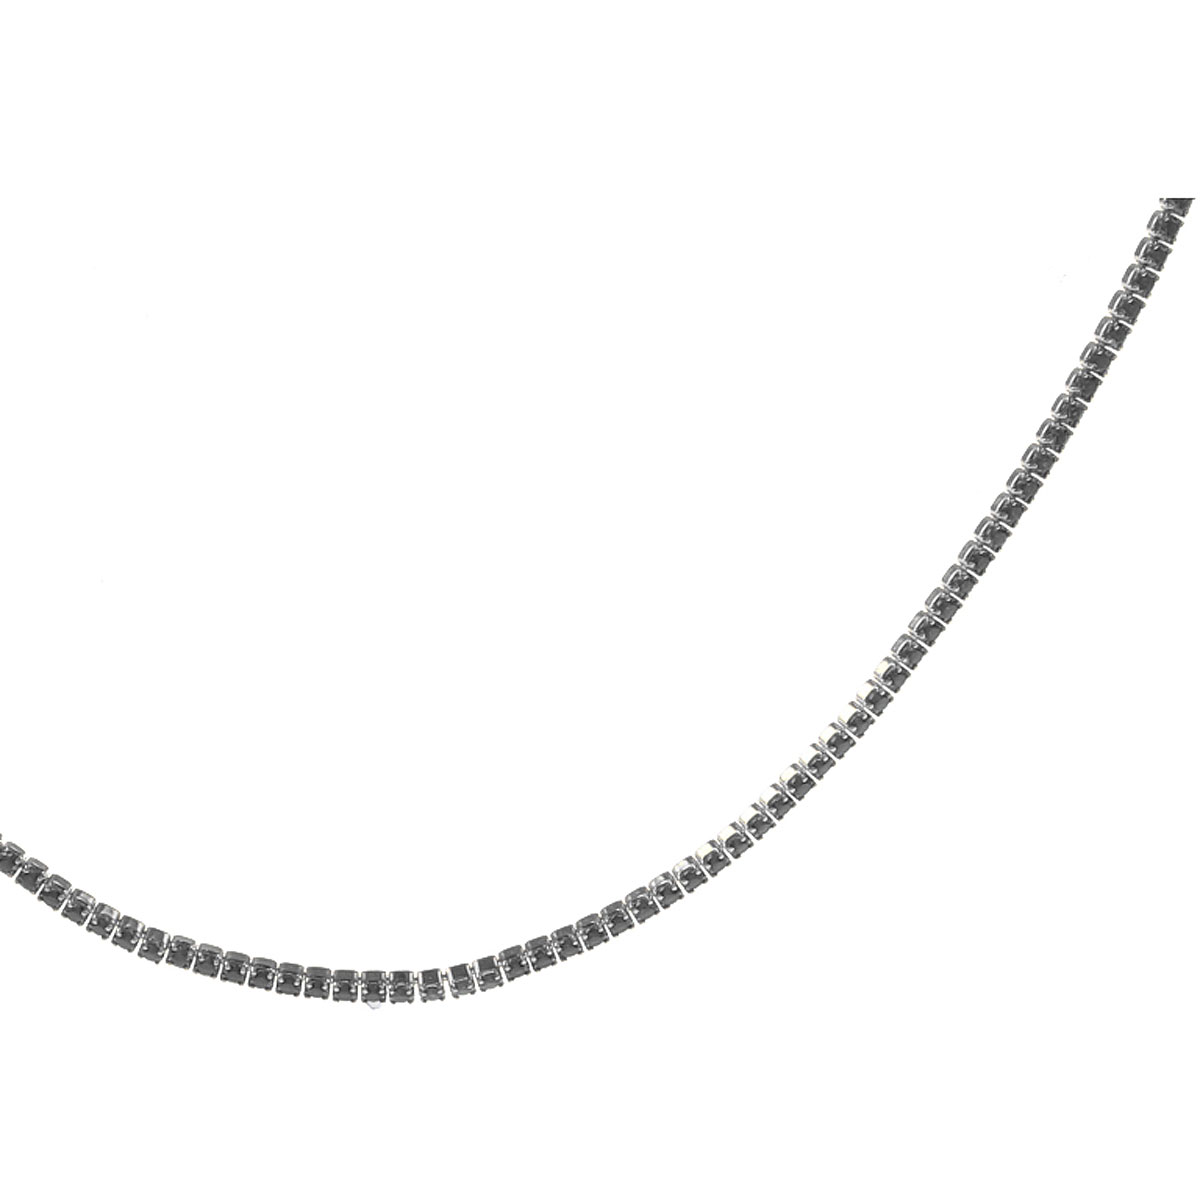 Francesca Angelone Necklaces, Yellow Gold, Silver 925, 2019